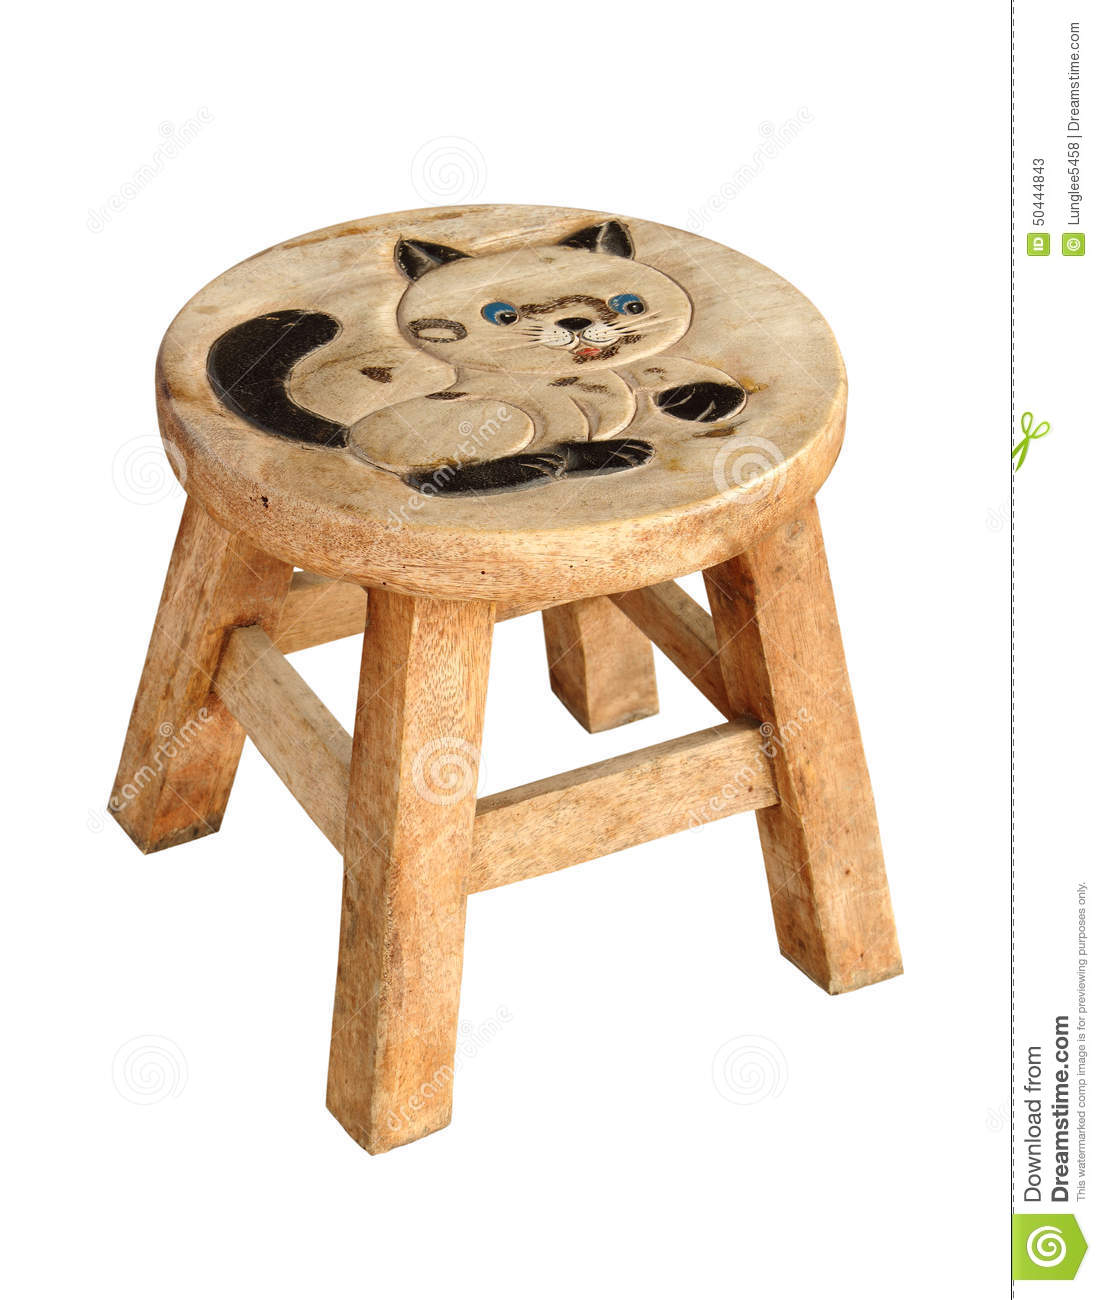 small wooden chair types of couches and chairs old stock image seat isolated 50444843